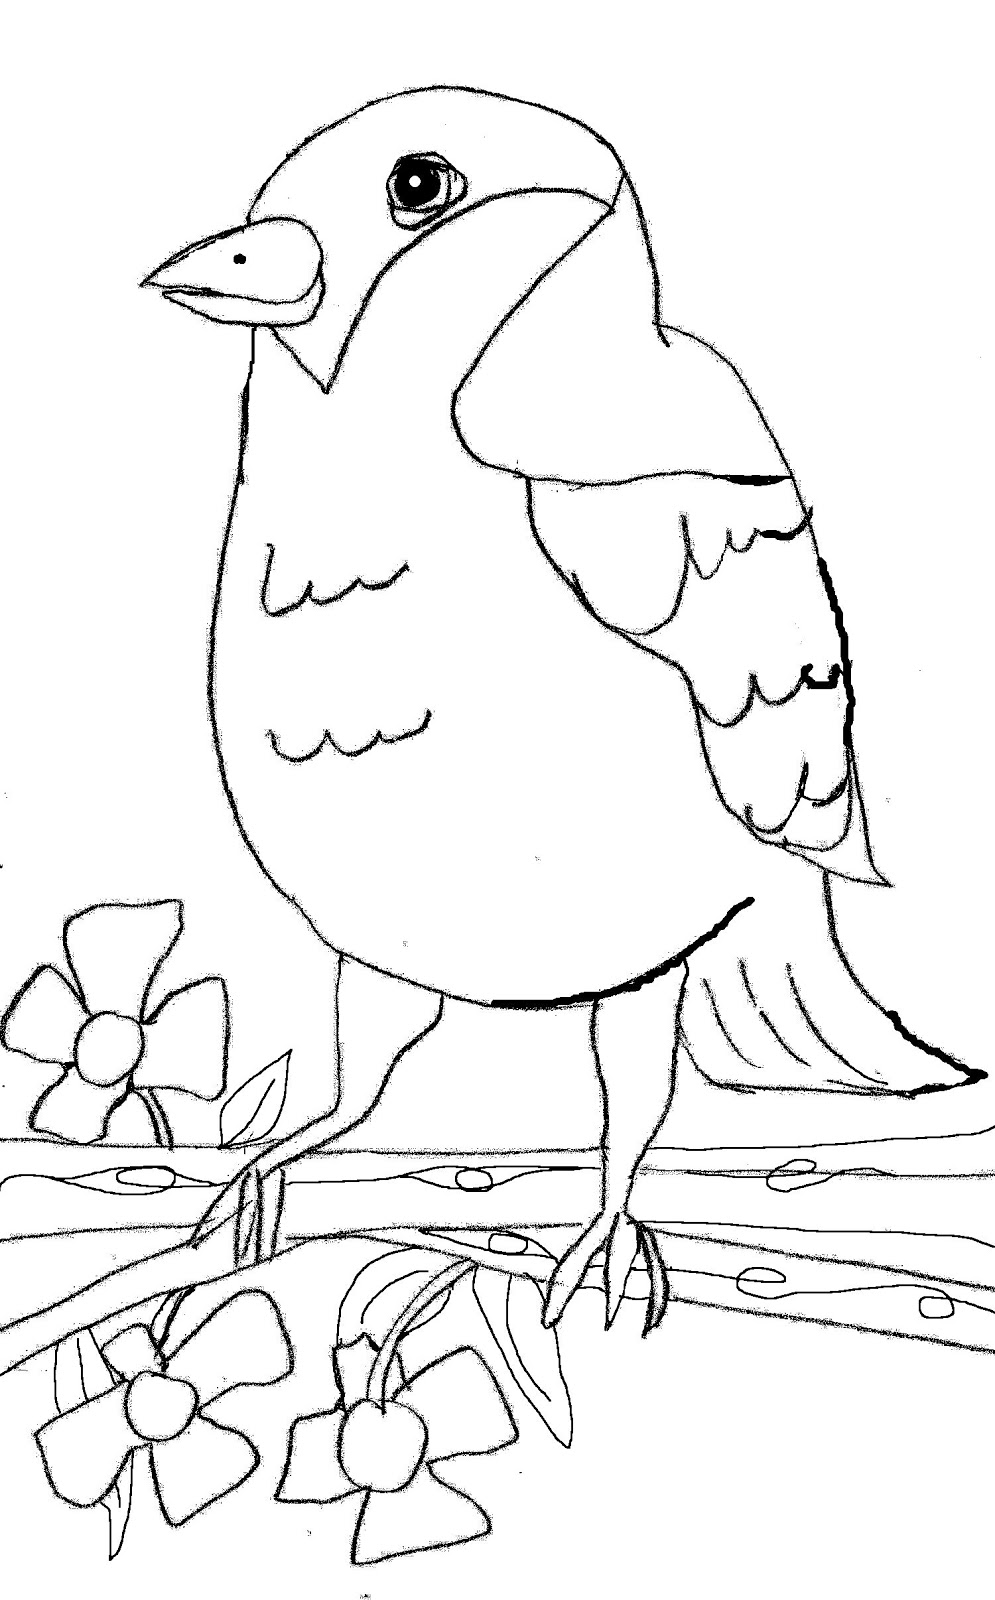 Christian Images In My Treasure Box: Home Drawn Bird in